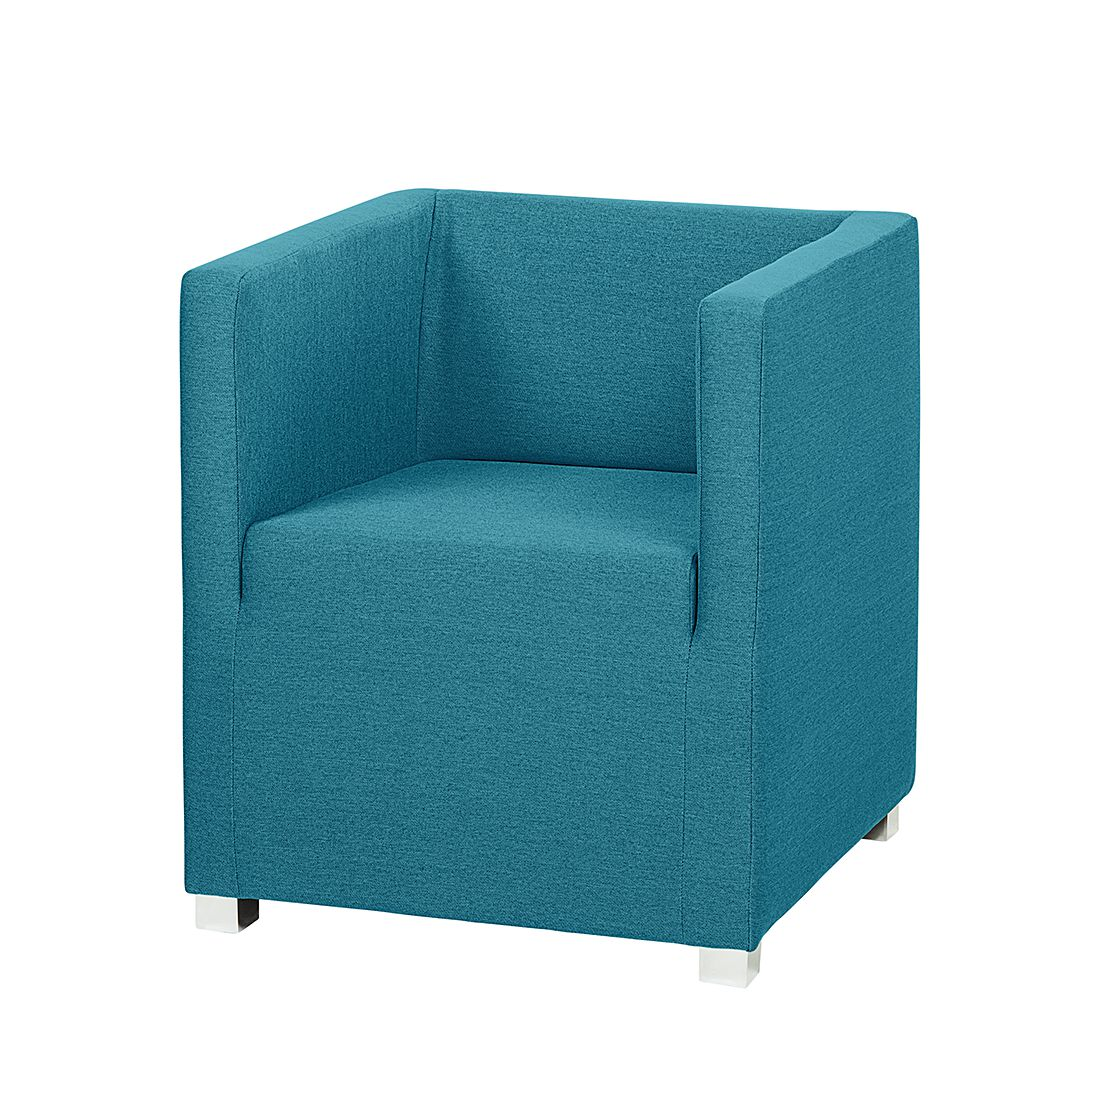 Fauteuil Carmen - Tissu turquoise, mooved